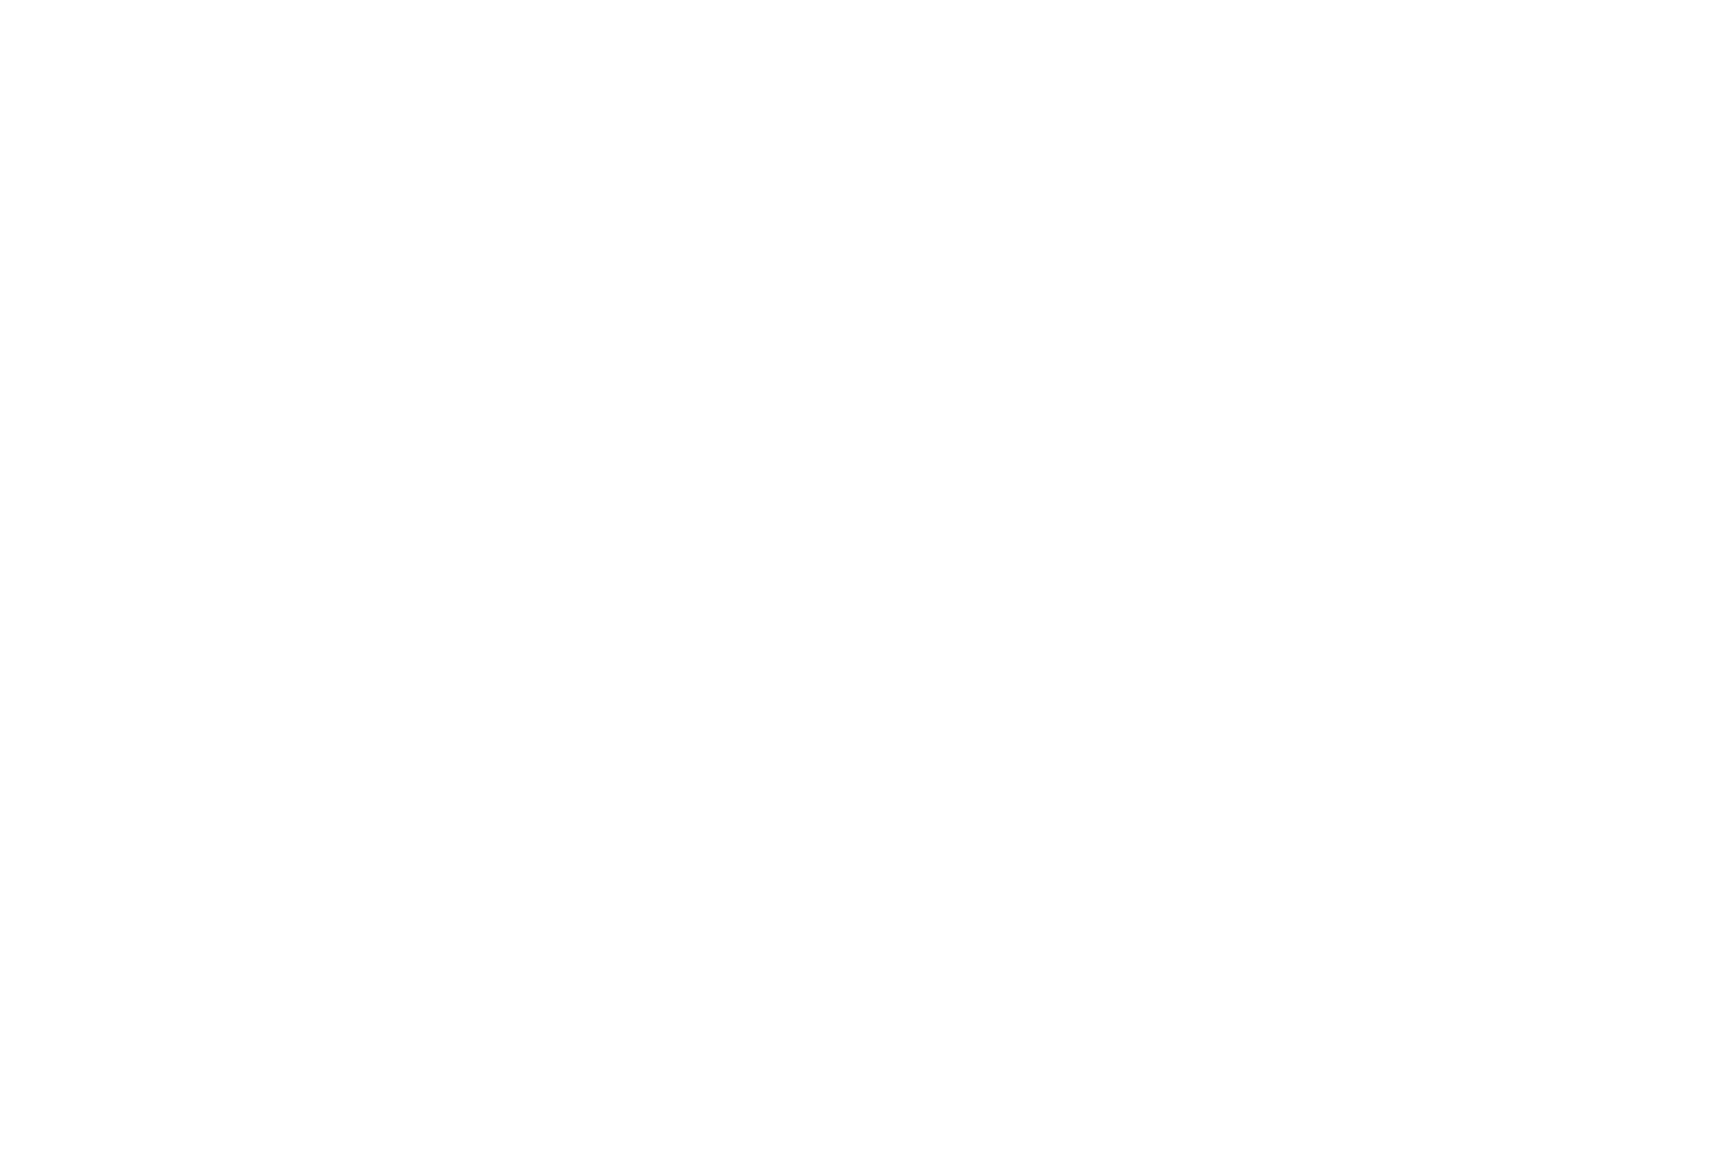 TOP 5 FINALIST - Bare Bones Intl Film Festival Screenplay Competition